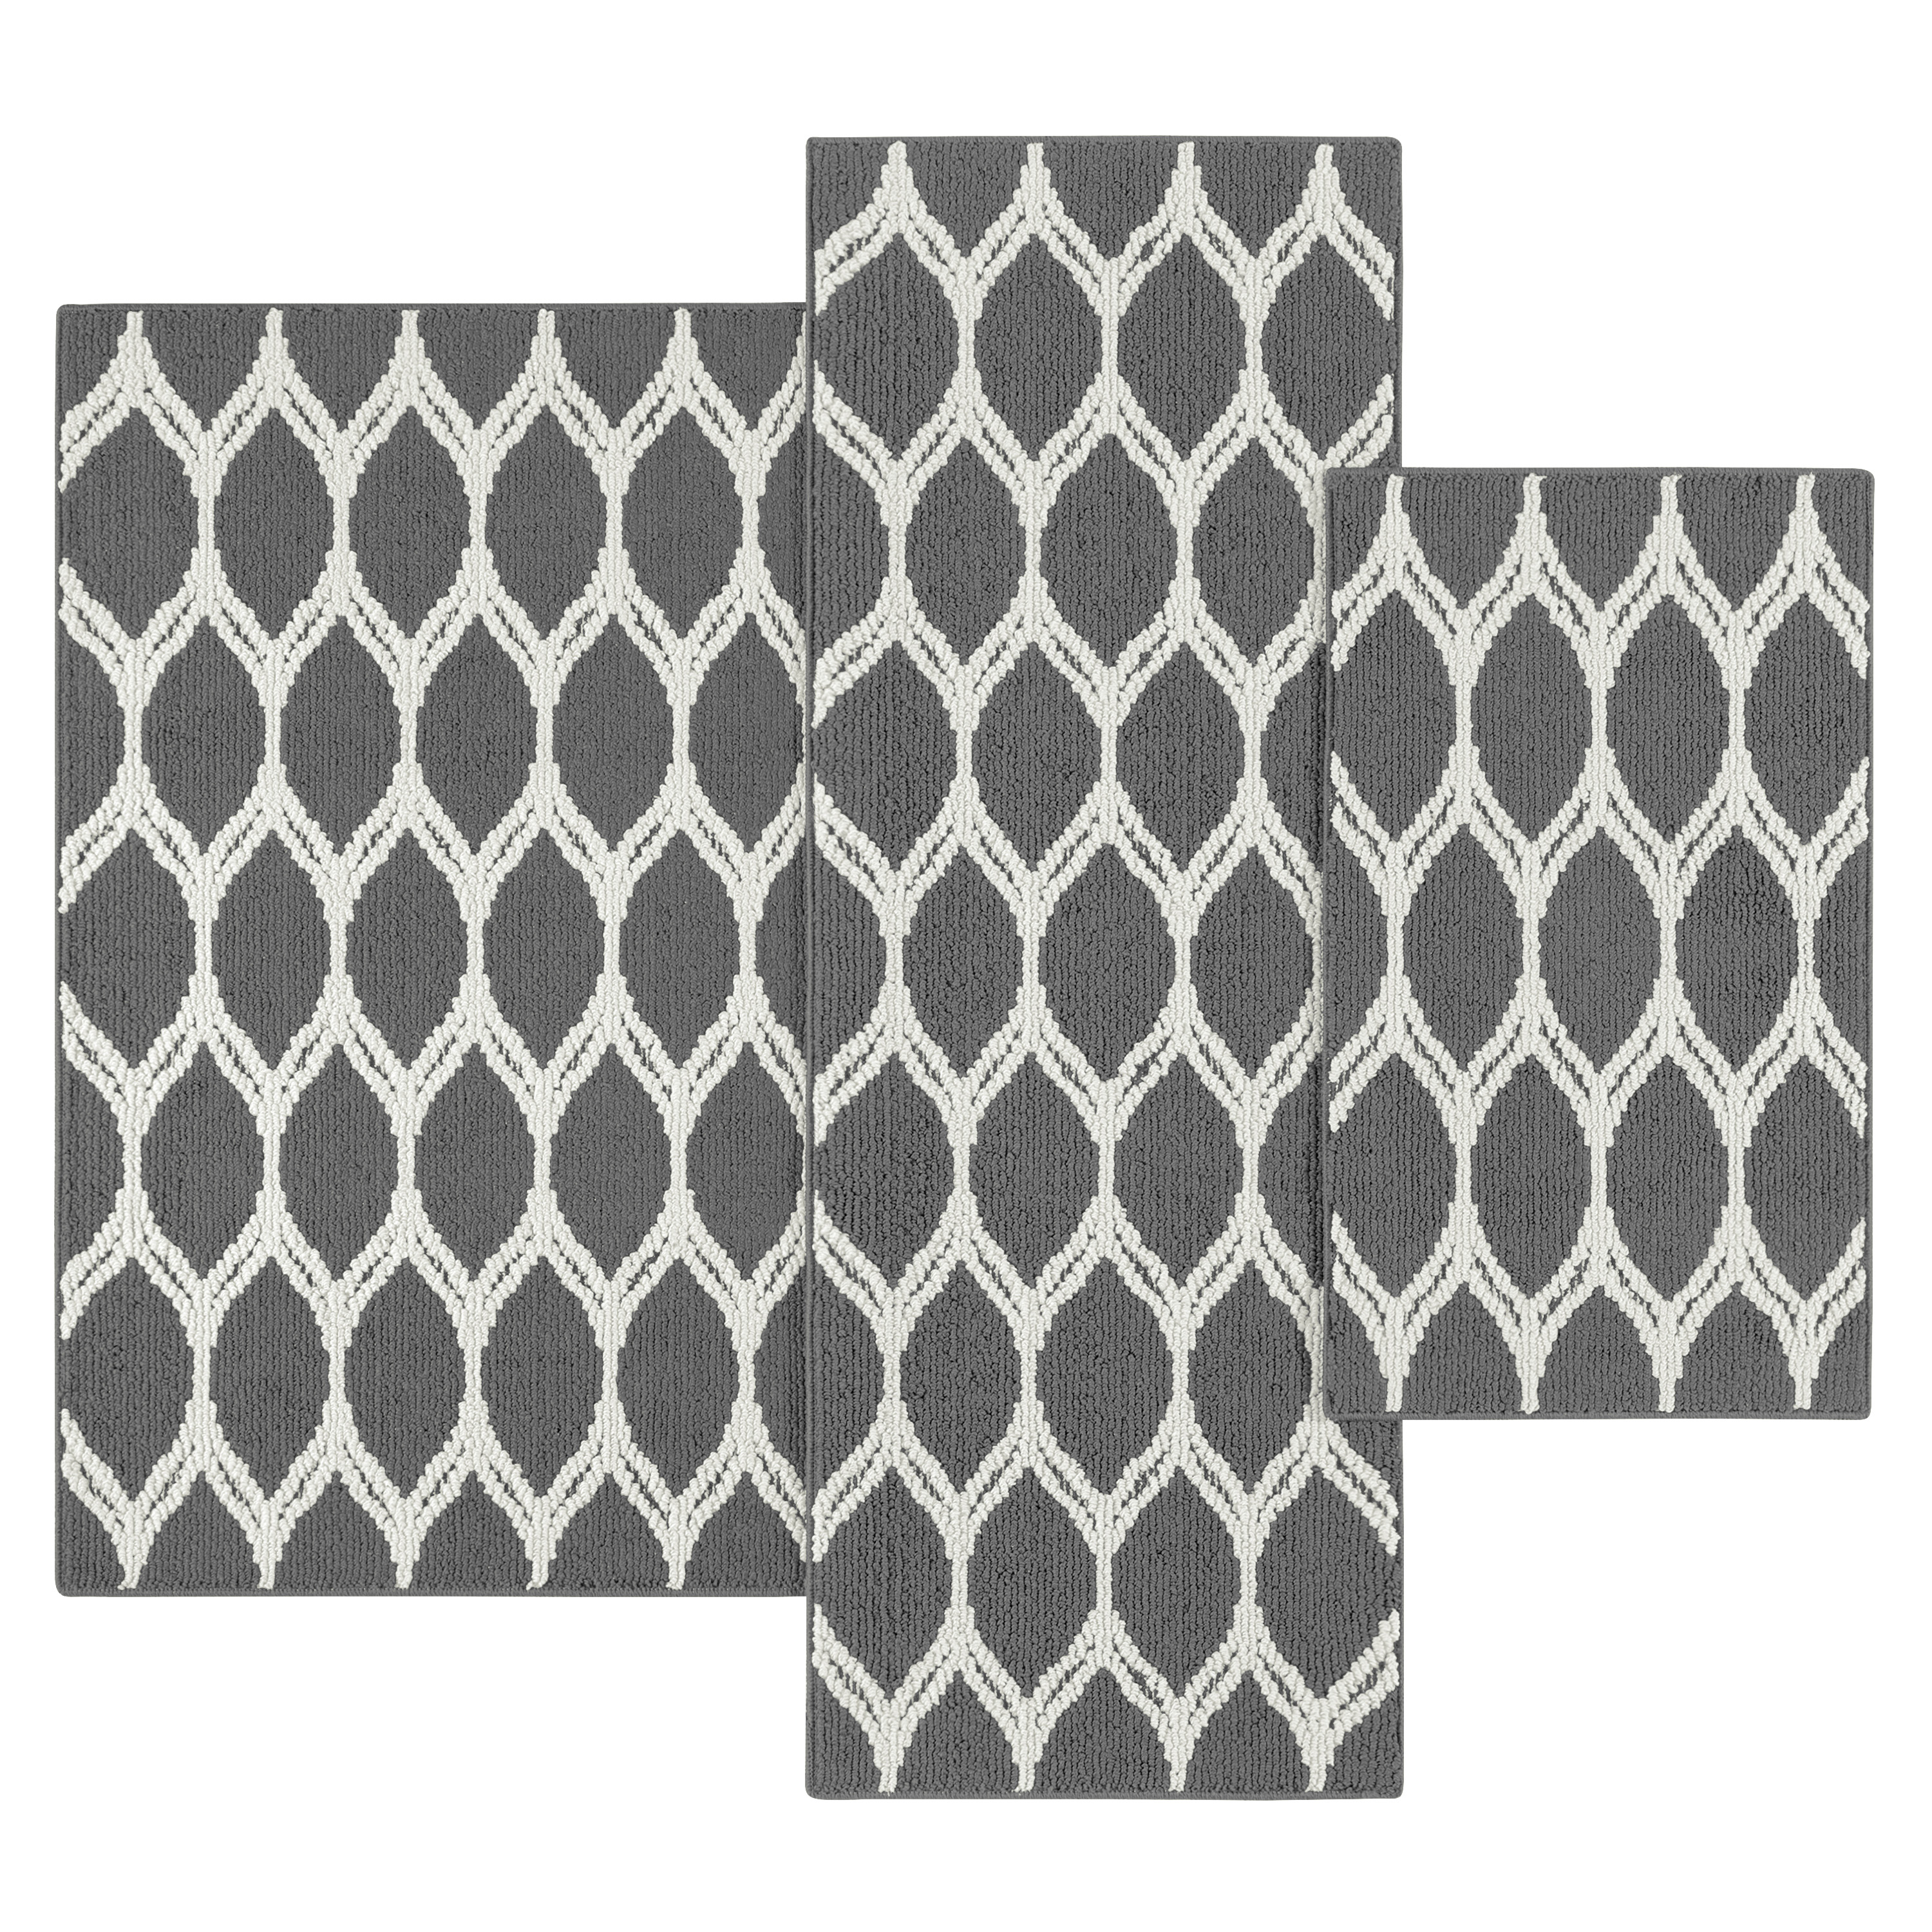 Mainstays Sheridan Ogee 3-Piece Accent Rug Set, Multiple Colors